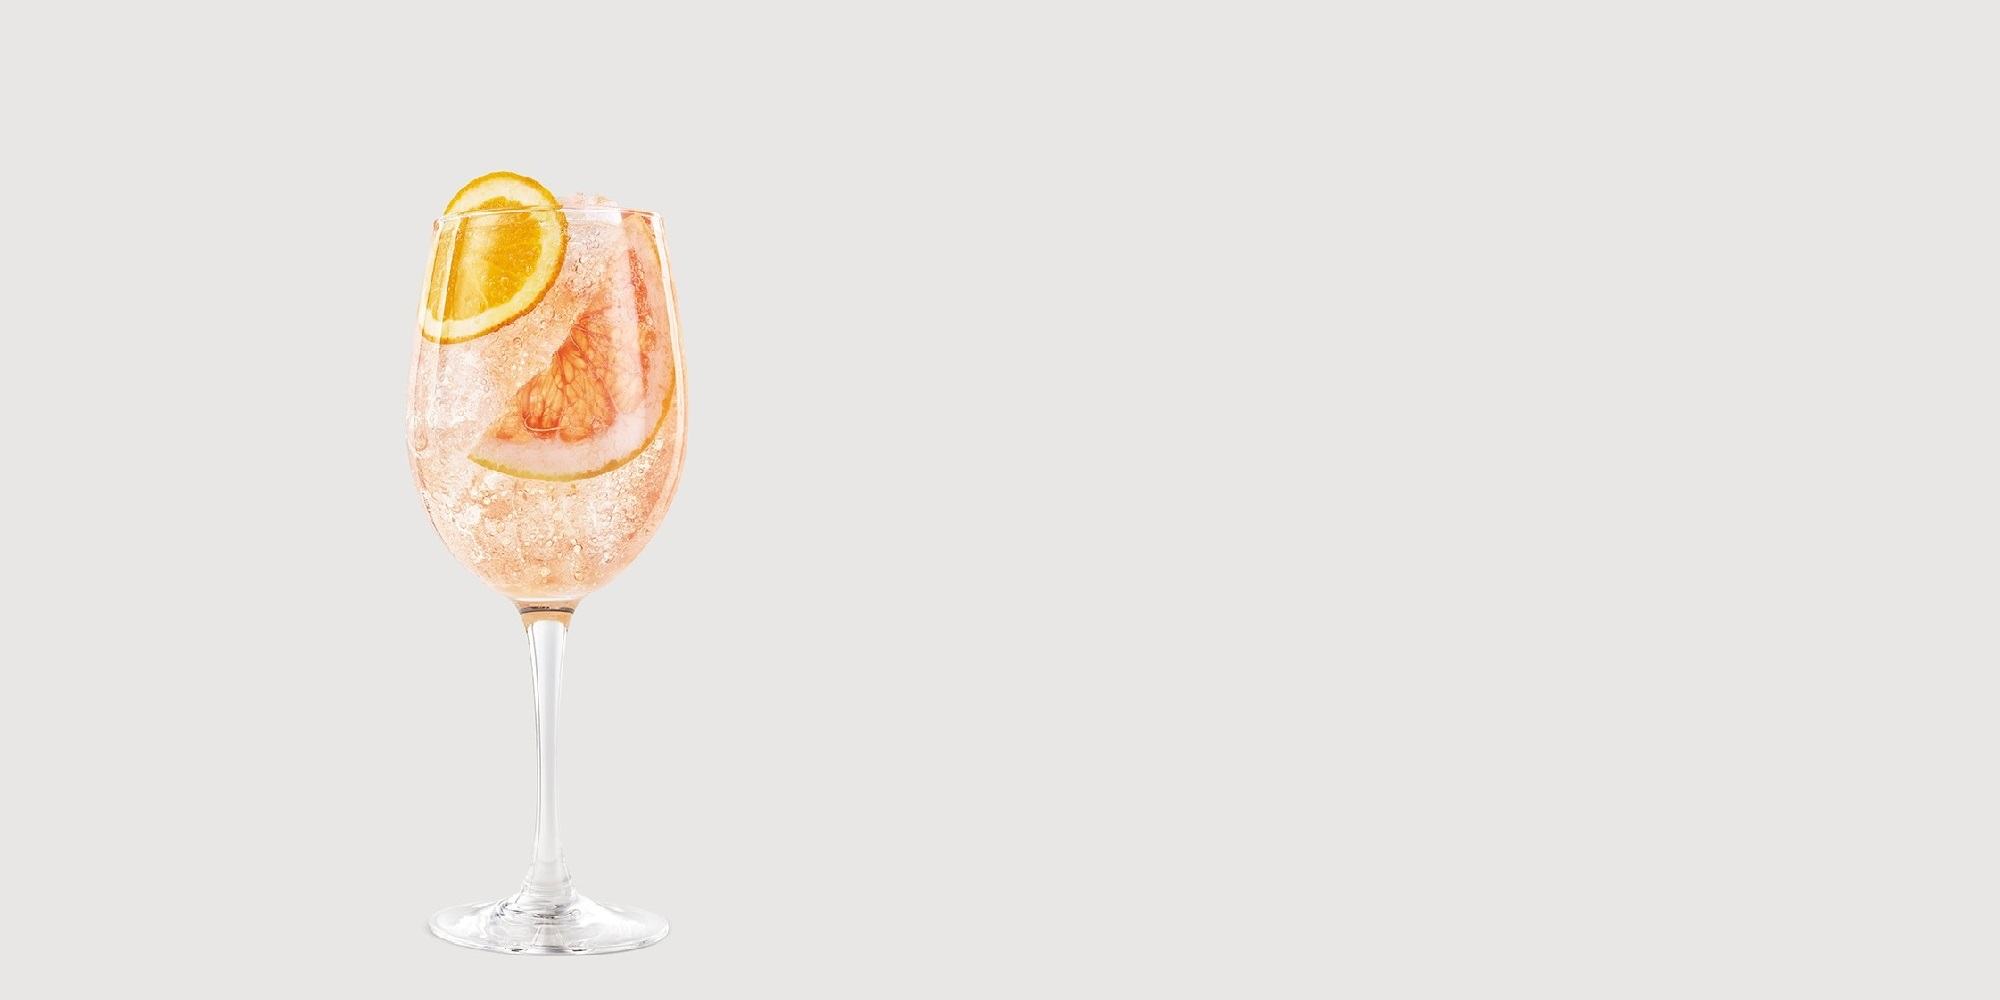 SMIRNOFF INFUSIONS, GRAPEFRUIT, ORANGE AND BITTERS WITH SODA